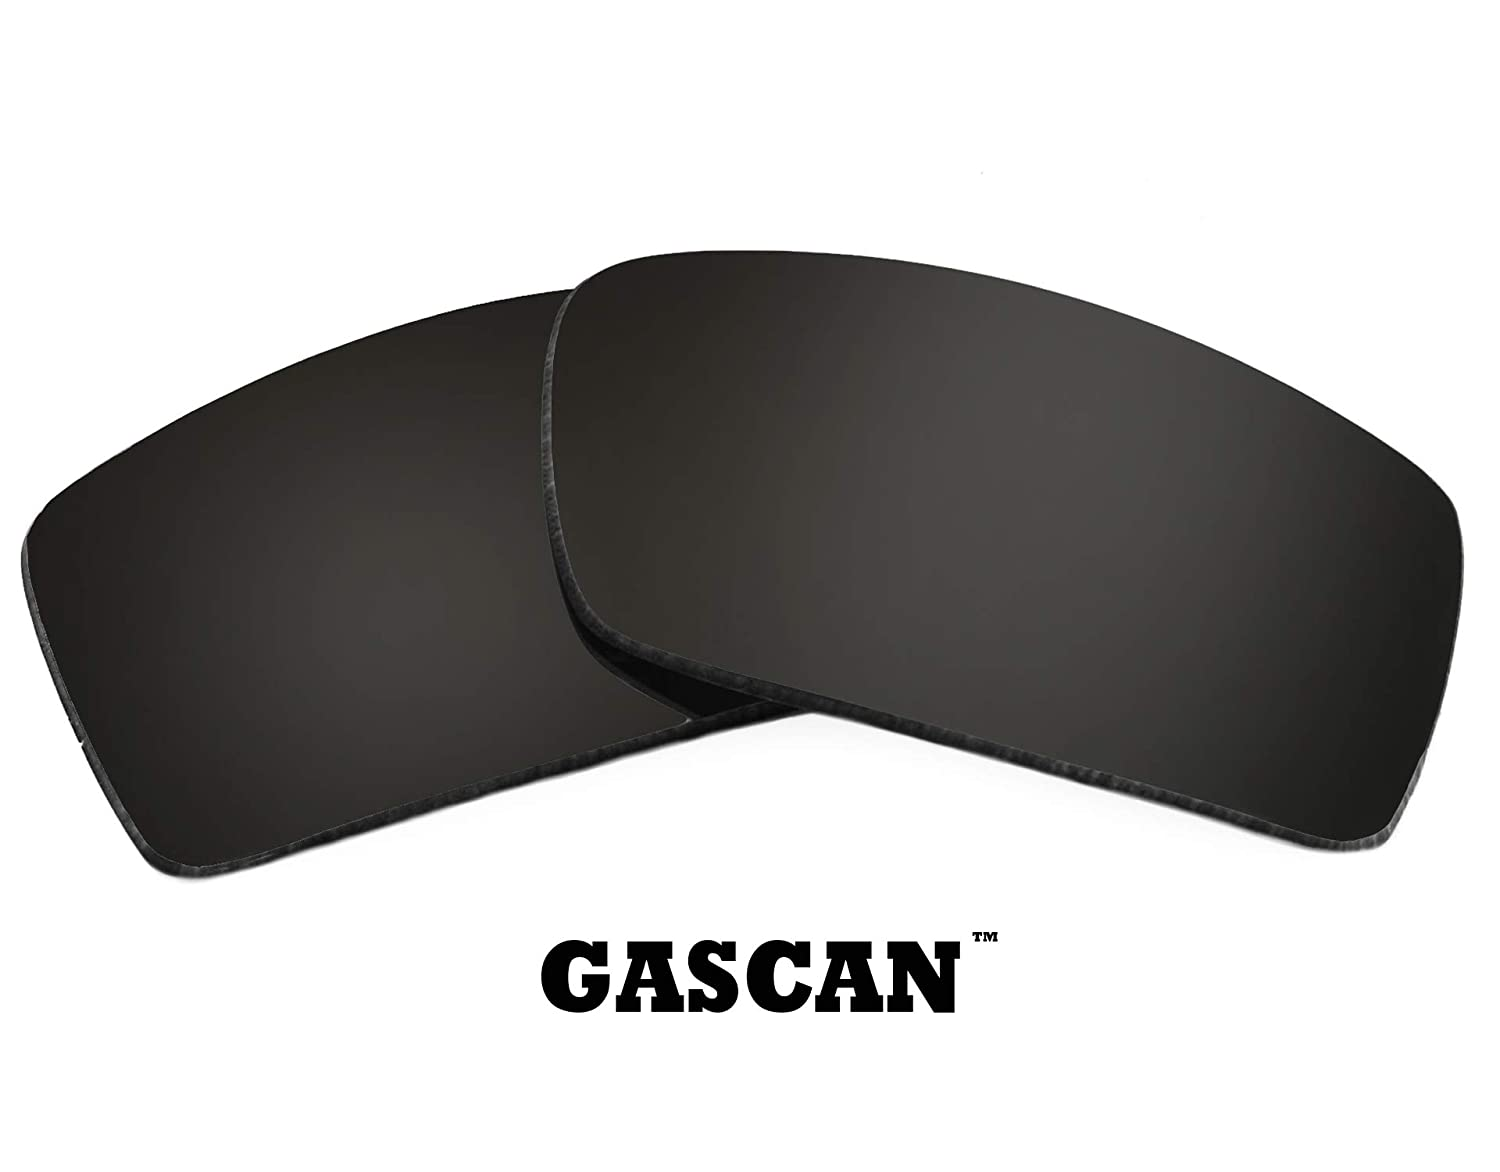 51887a3769 GASCAN Replacement Lenses Advanced Black by SEEK fits OAKLEY Sunglasses at  Amazon Men s Clothing store